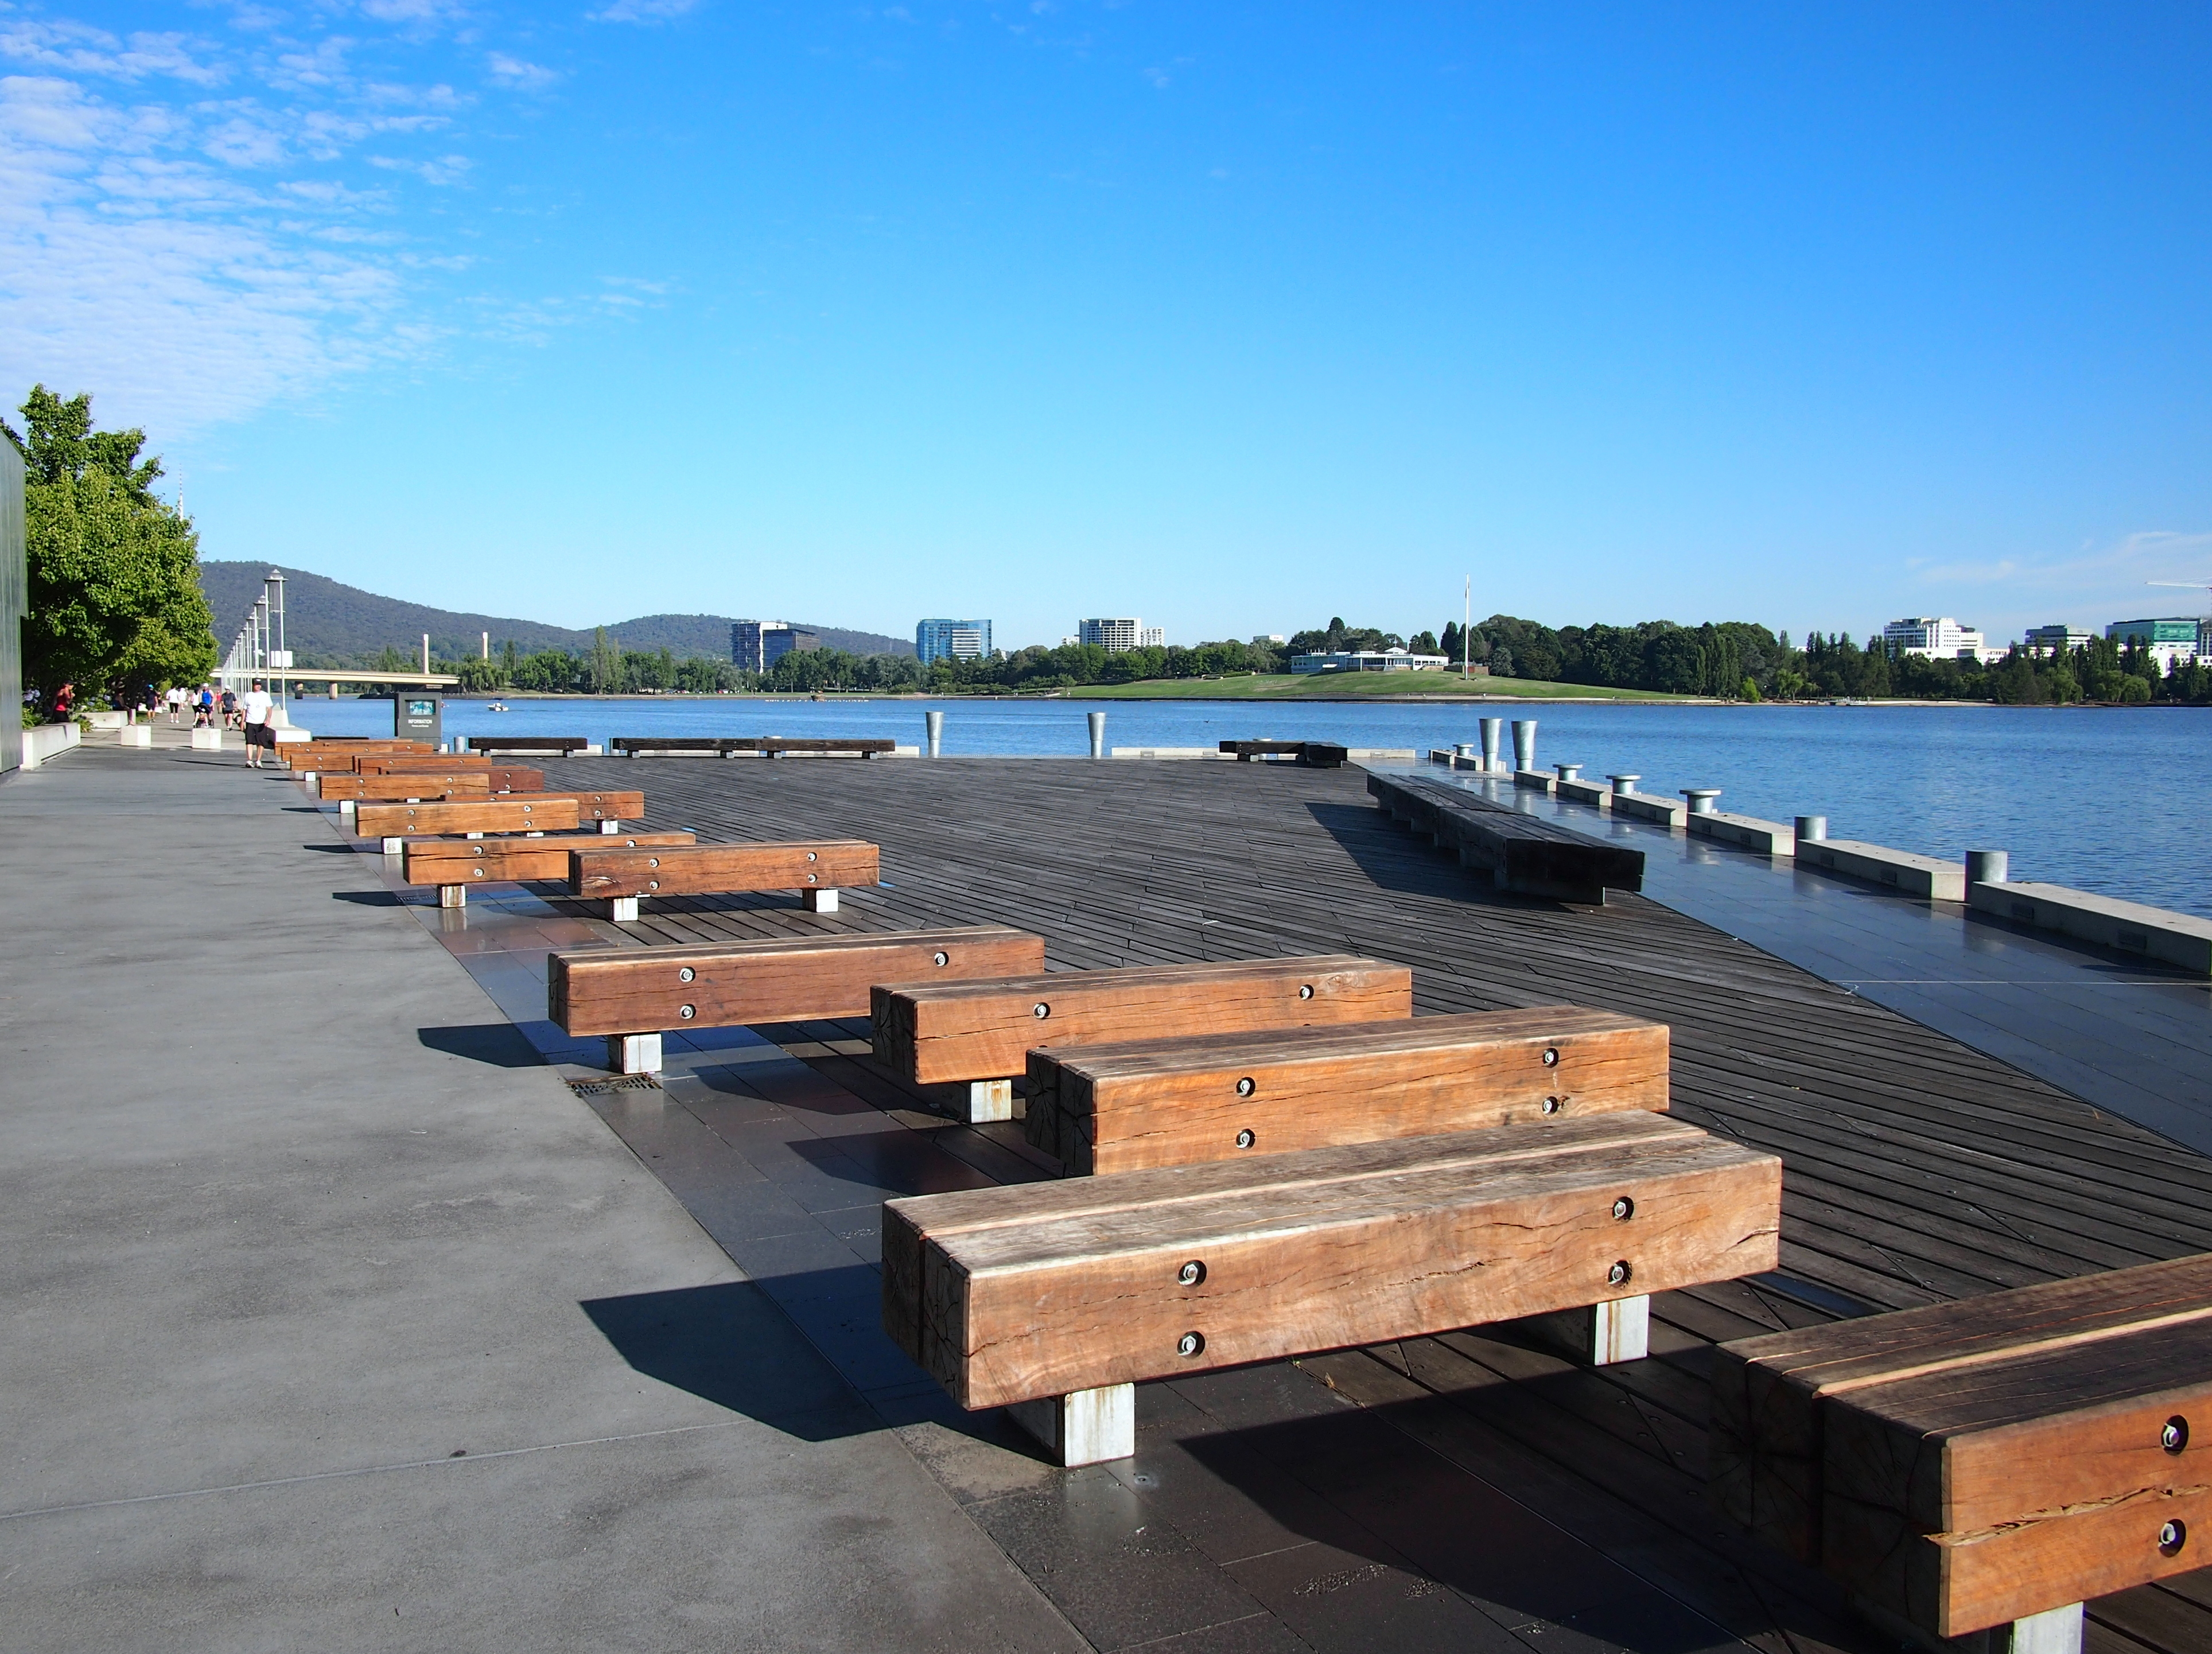 File:Benches at Commonwealth Place January 2013 - Wikimedia